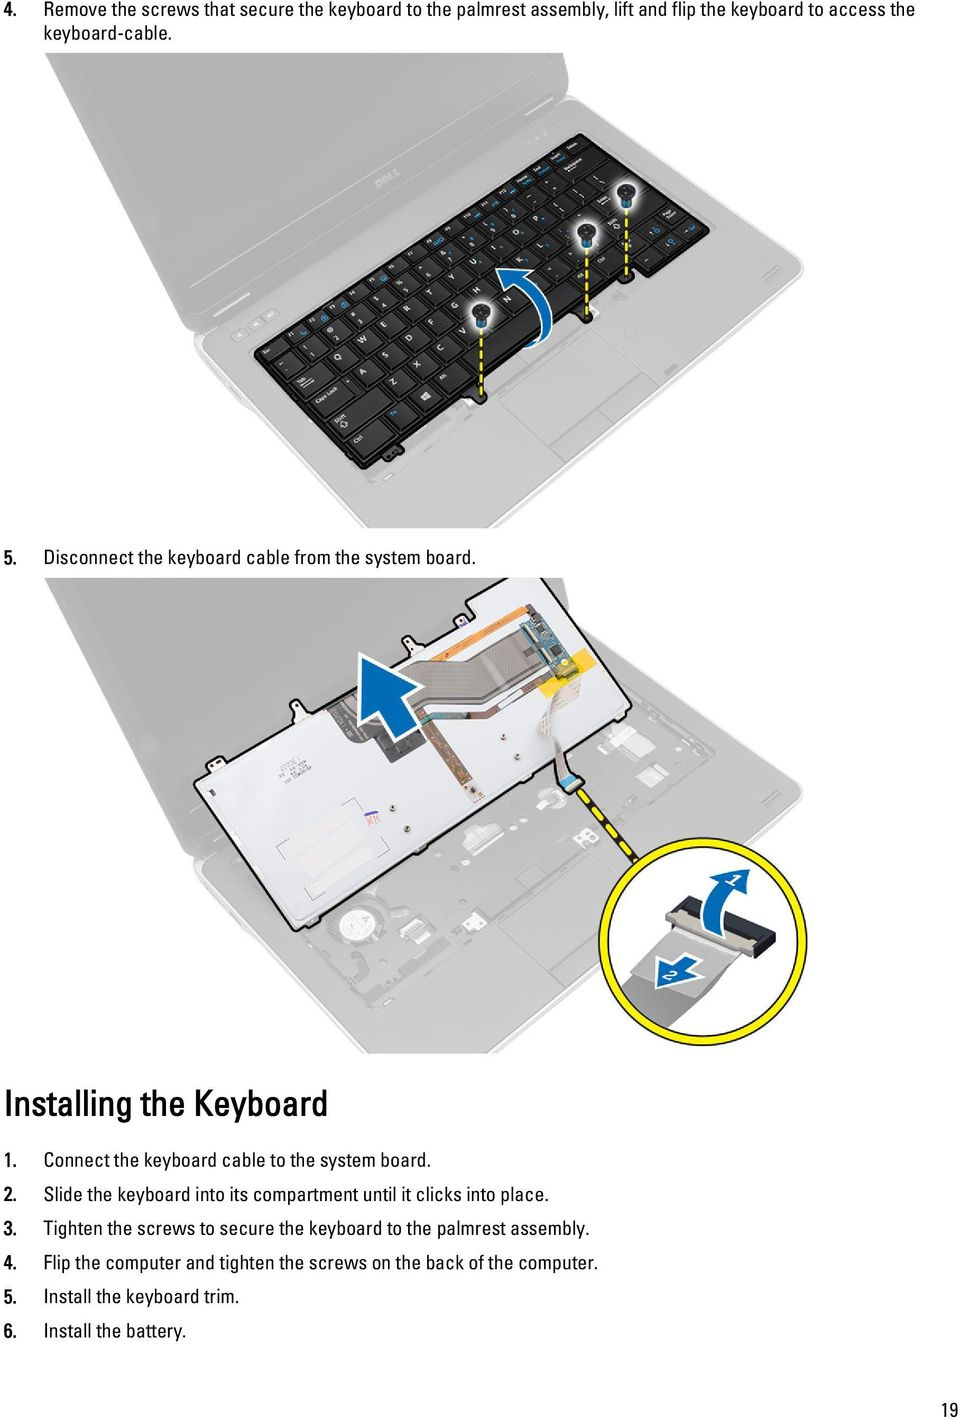 Slide the keyboard into its compartment until it clicks into place. 3.